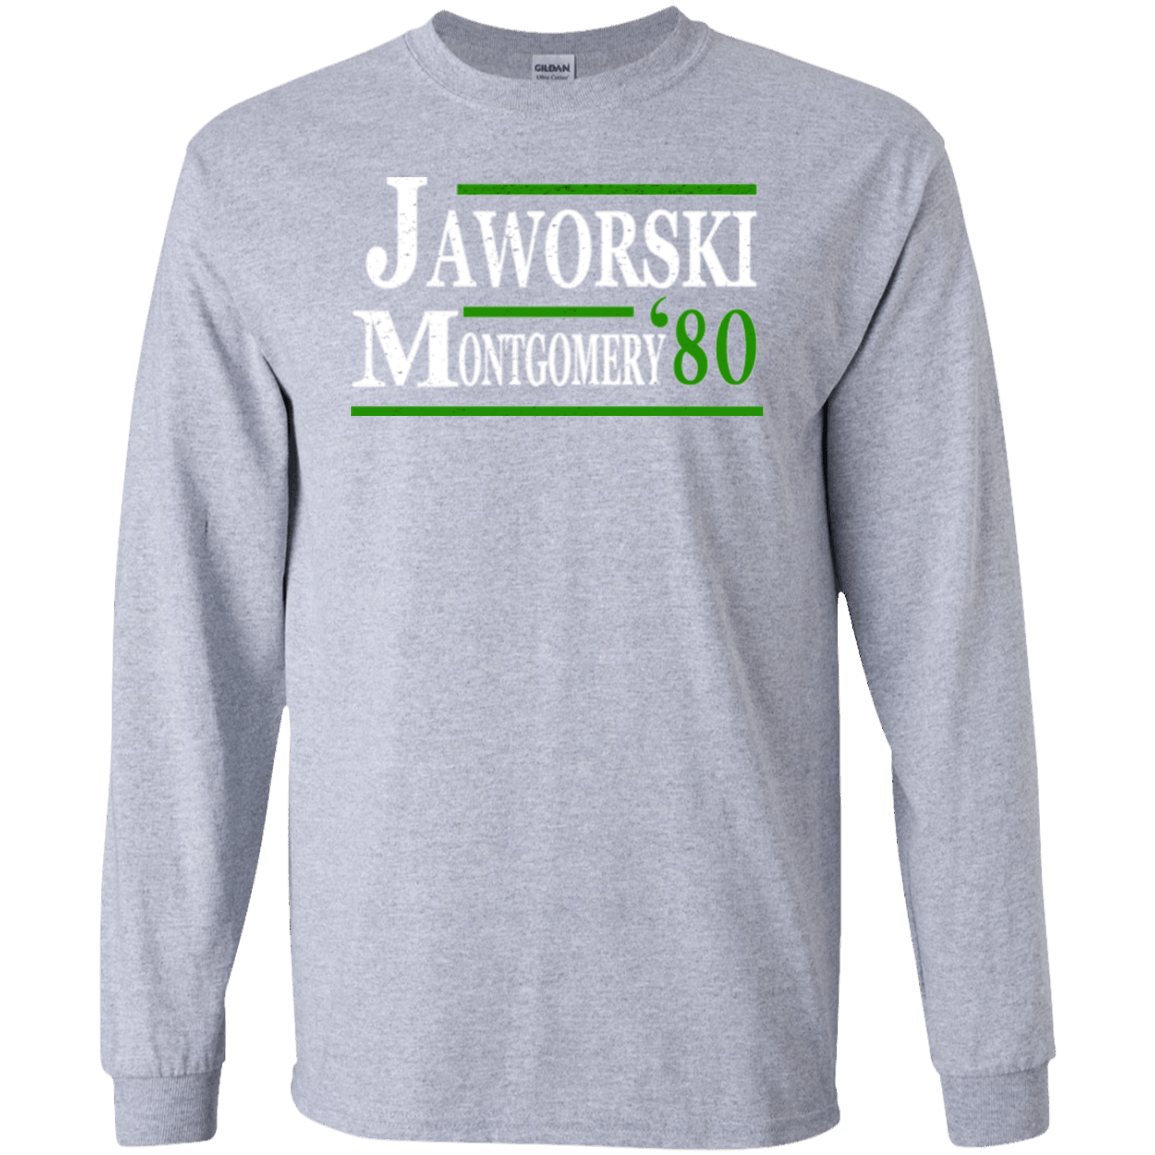 1980 Jaworski Montgomery Party Long Sleeve Ultra Cotton T-Shirt - Generation T